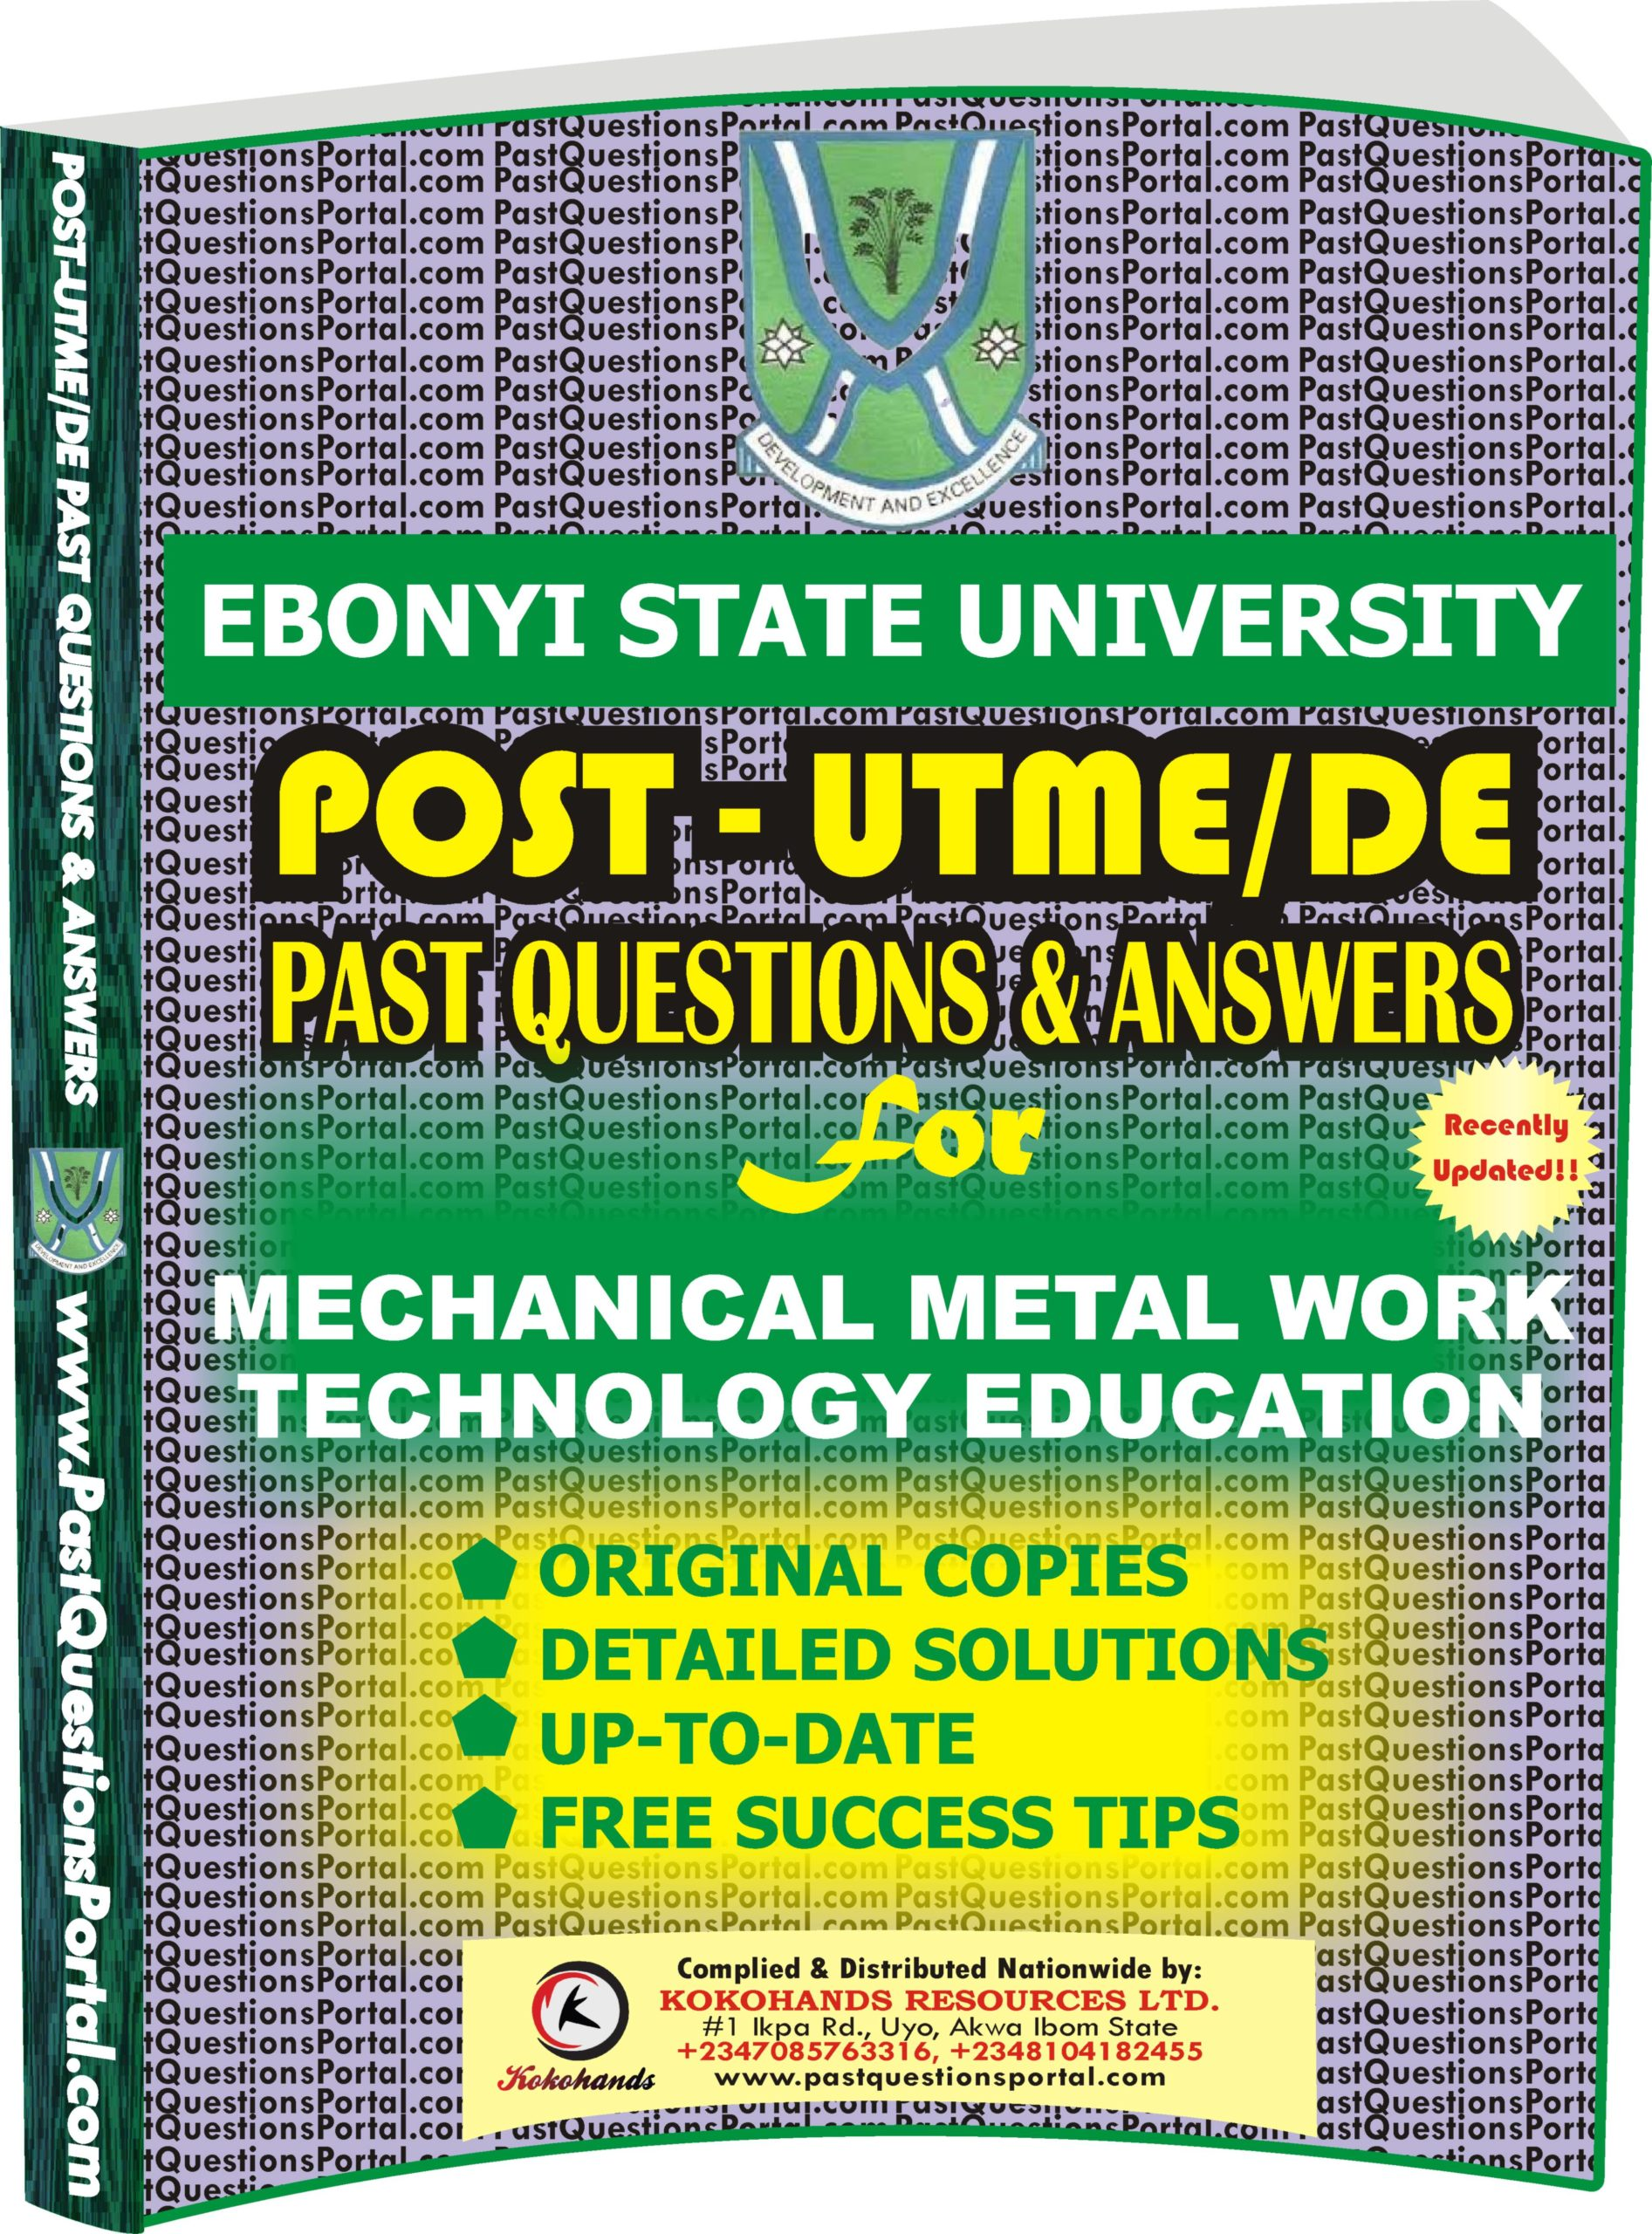 EBSU Post UTME Past Questions for Mechanical Metal Work Technology EDUCATION